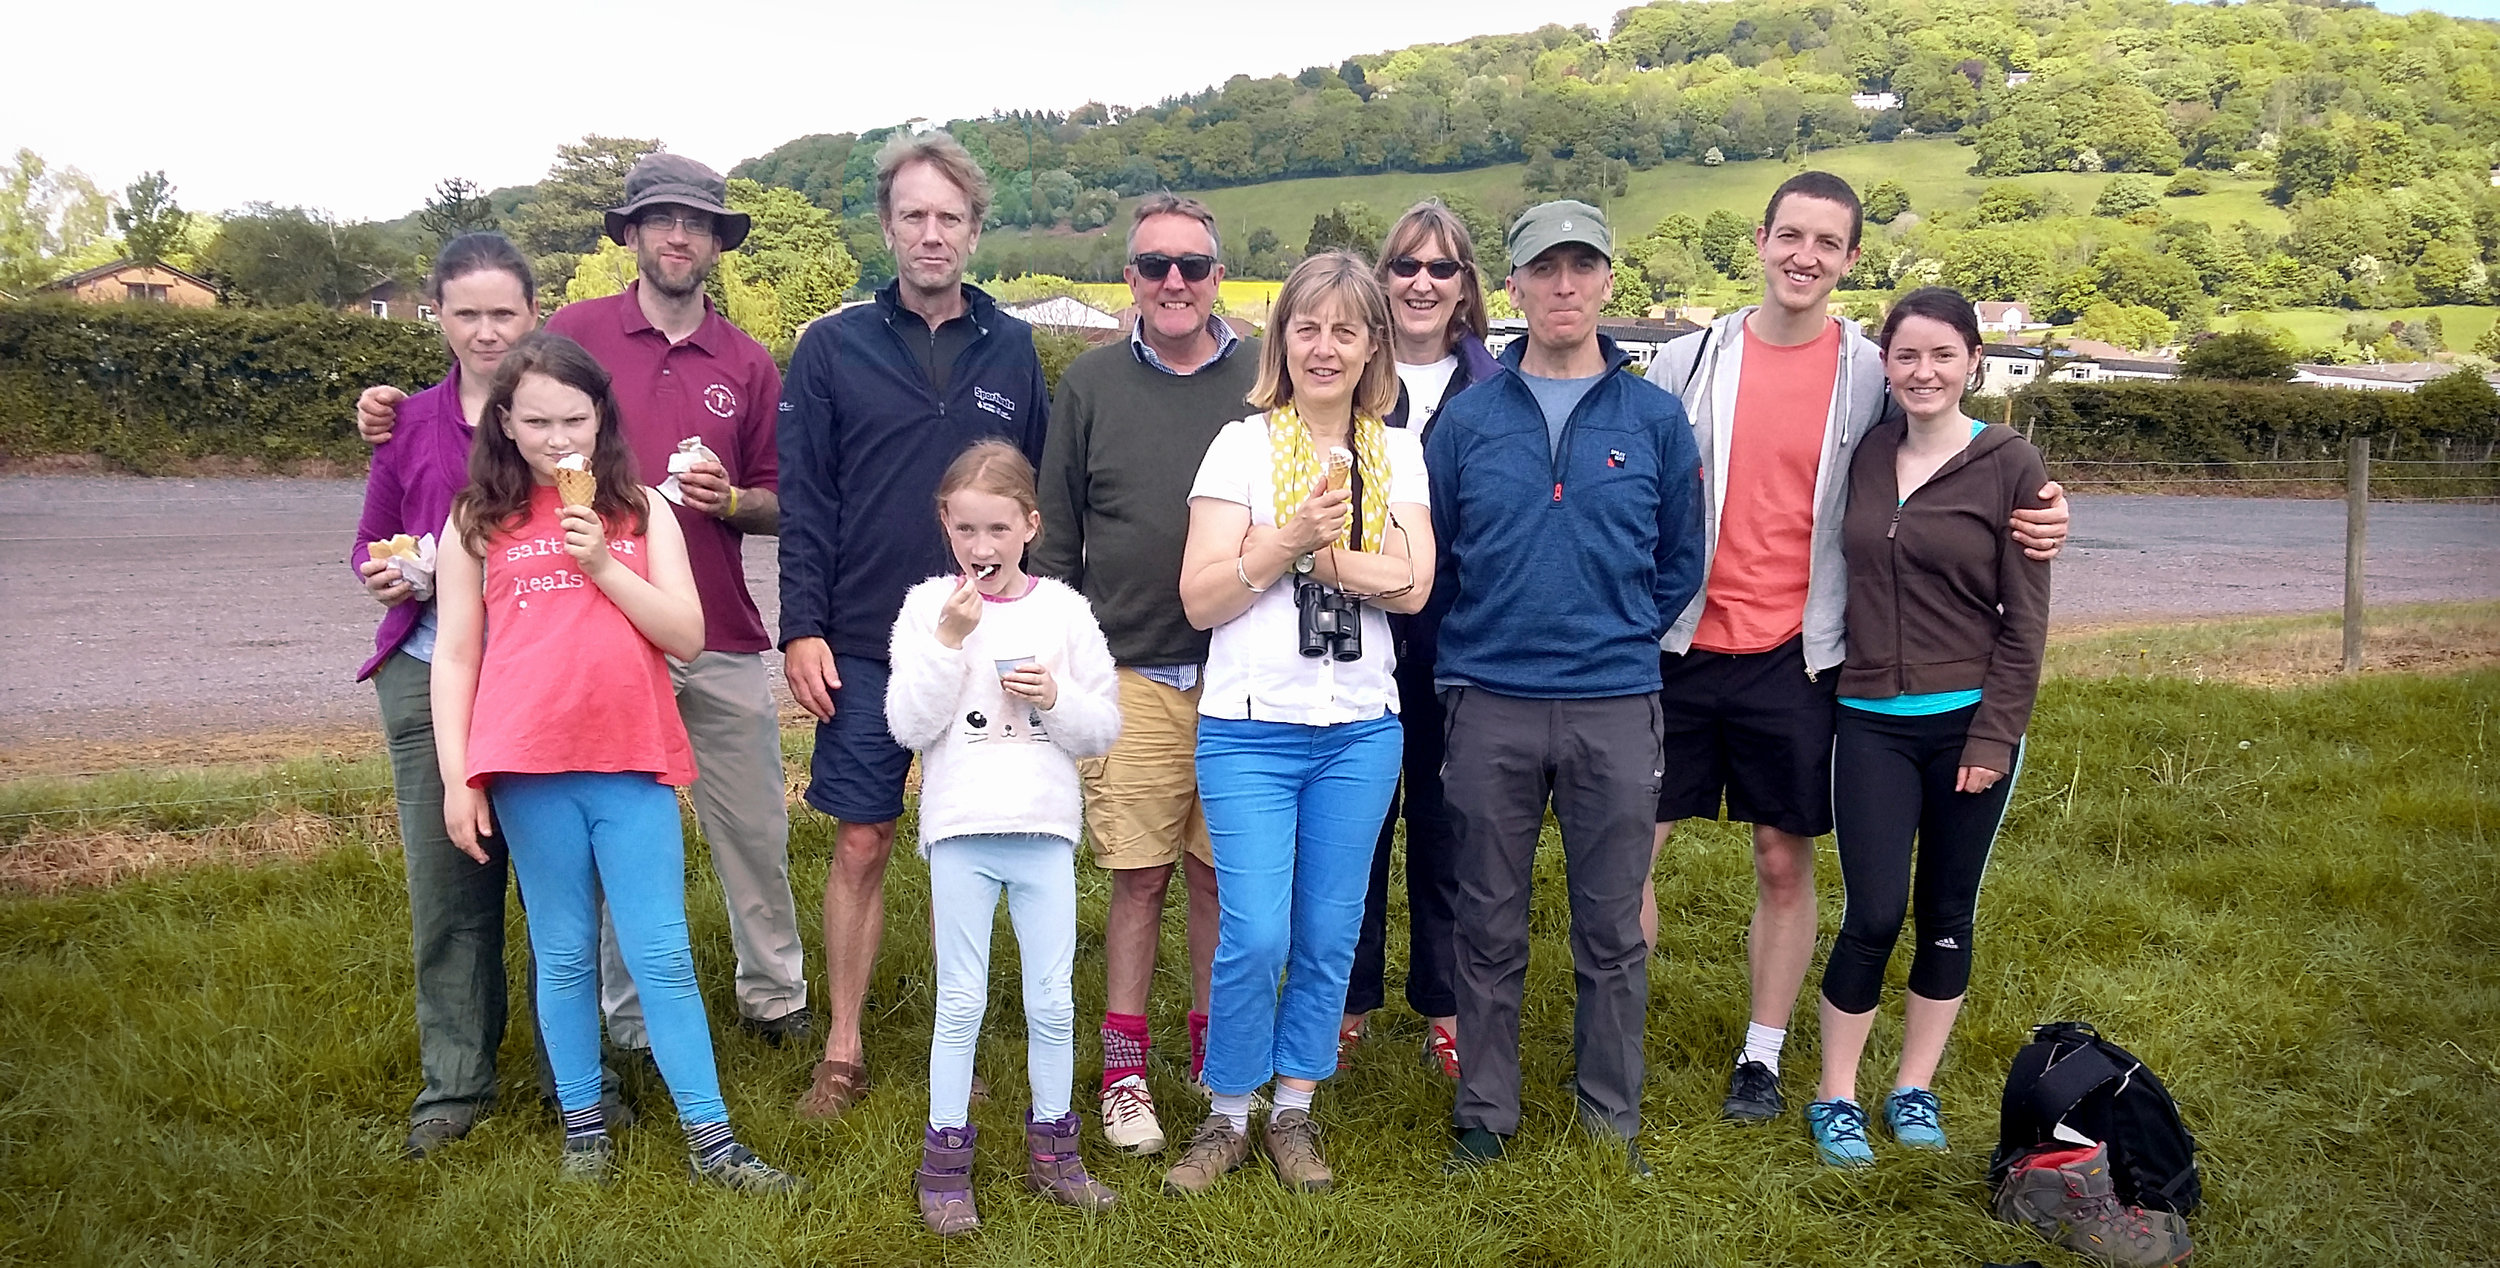 gcp  staff and families walking on the Wye